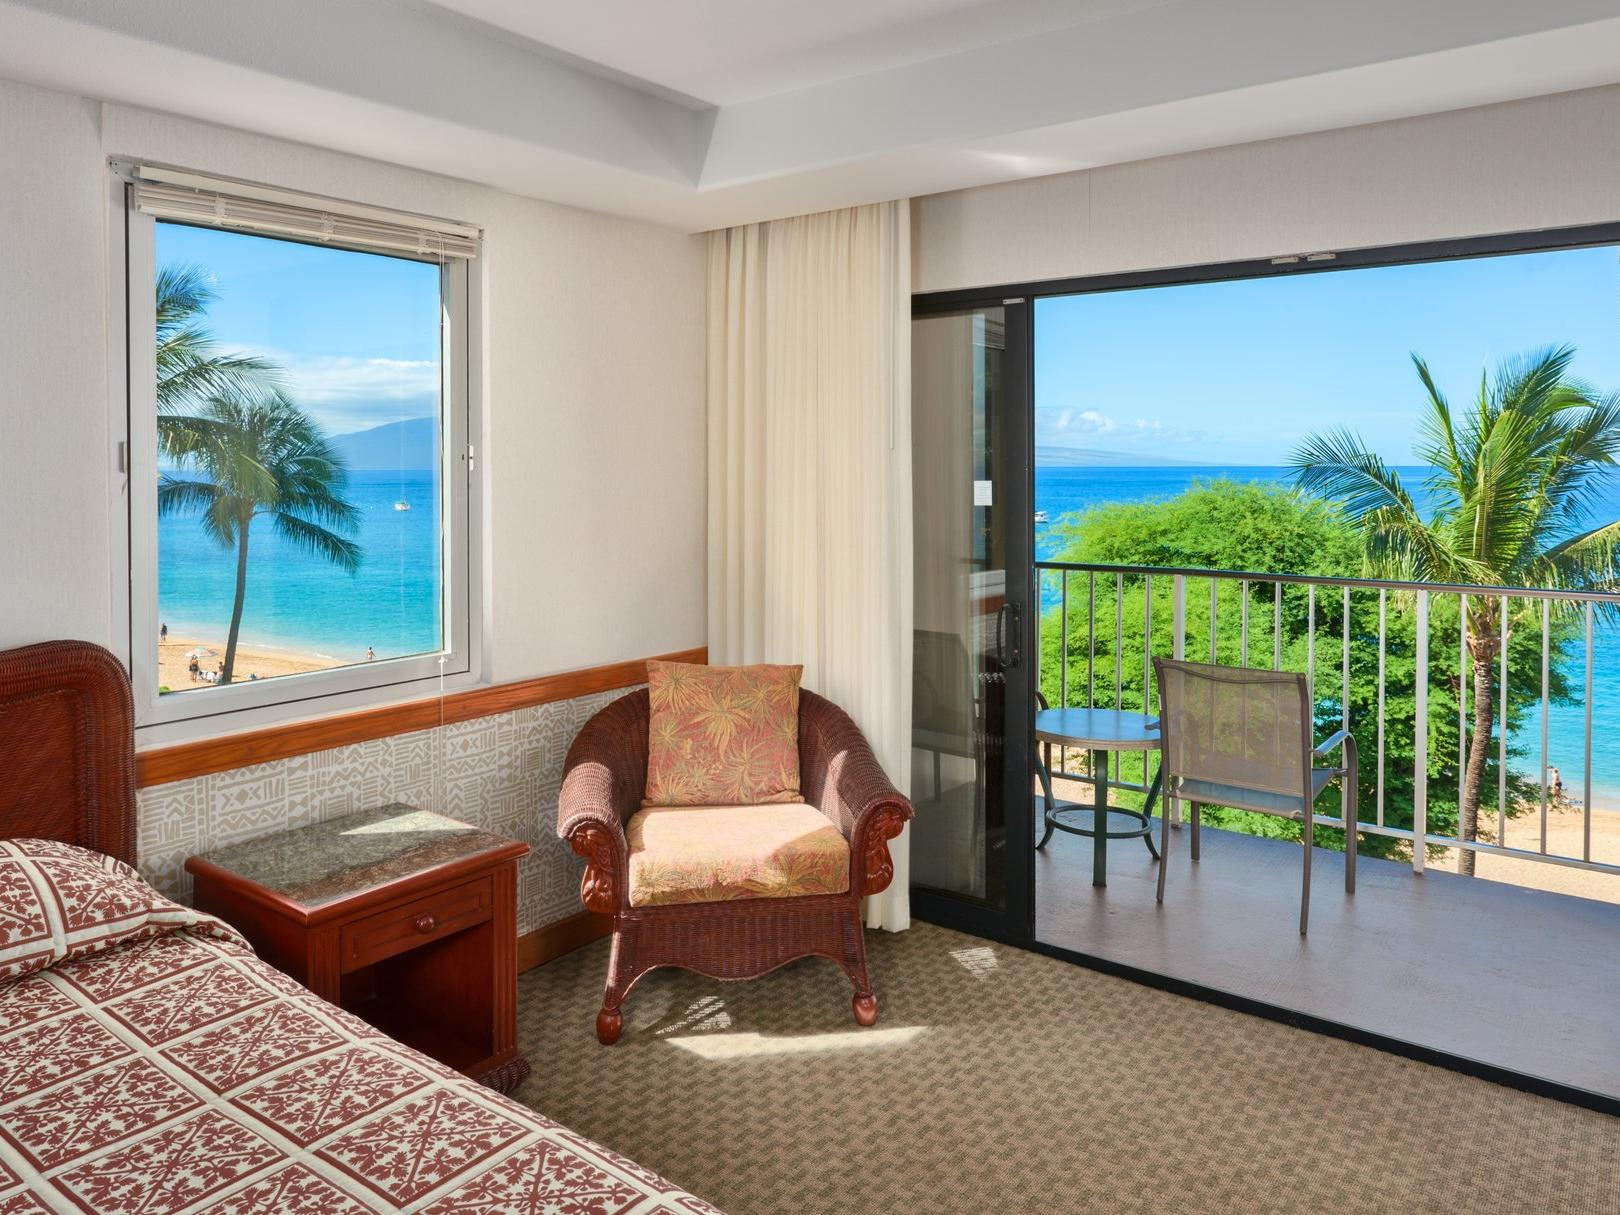 bed in hotel room with balcony overlooking beach and palm trees